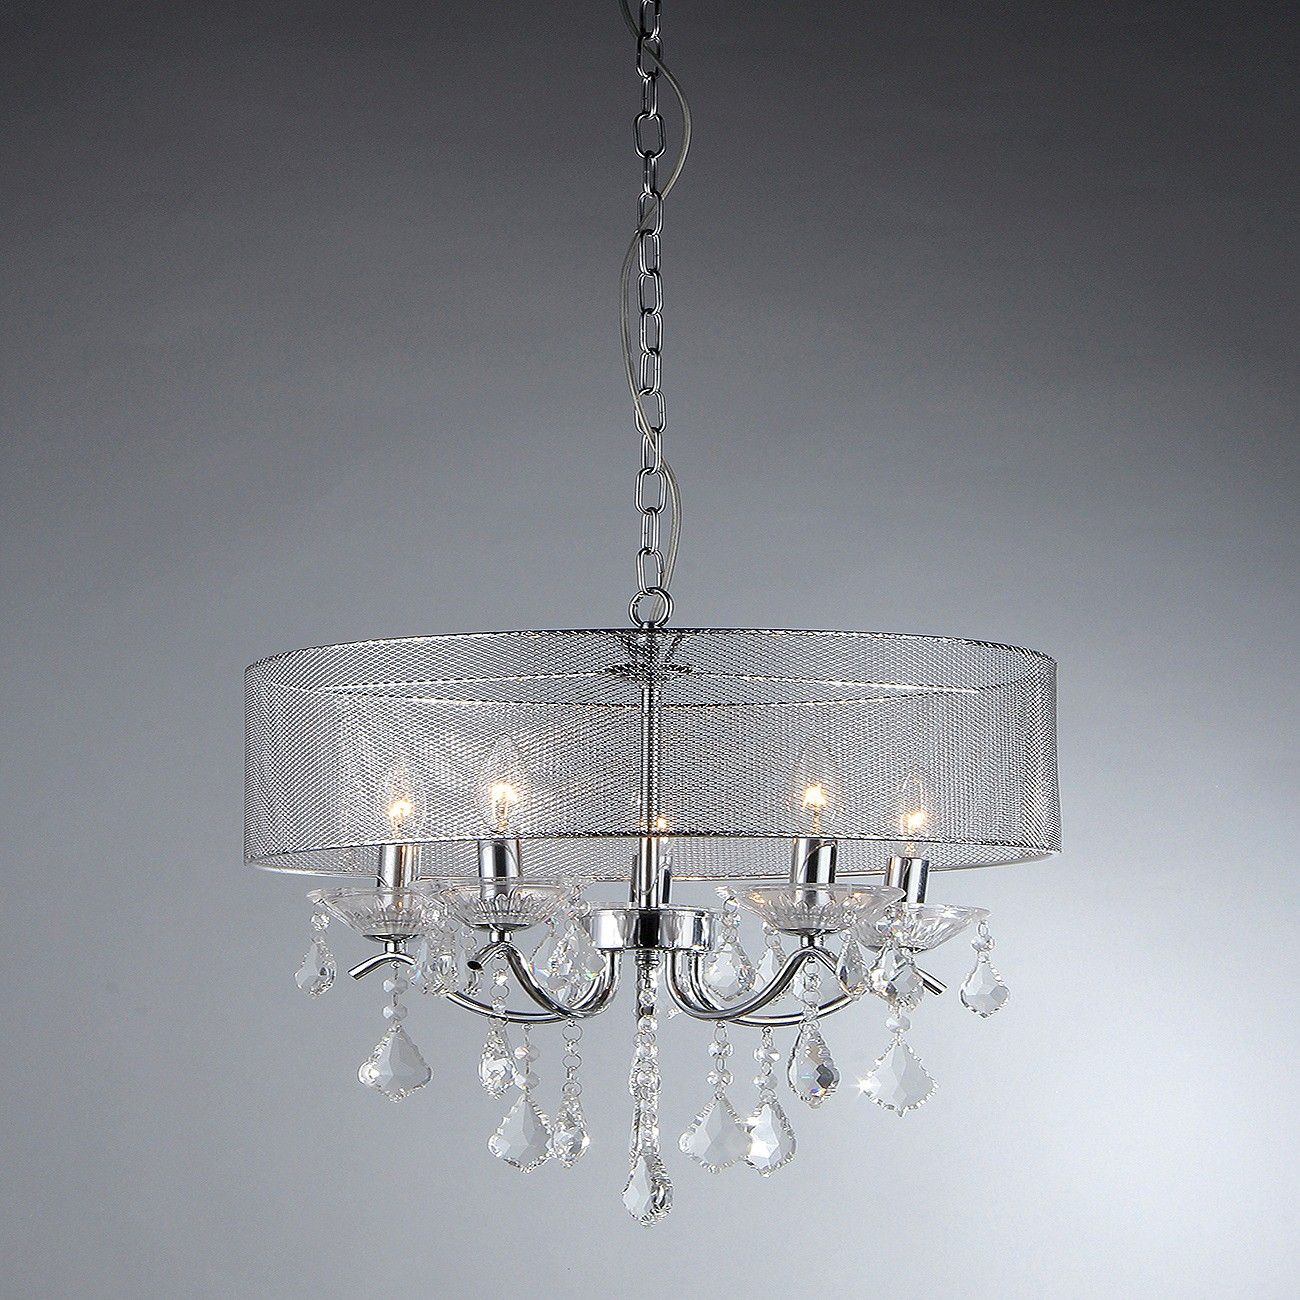 warehouse of tiffany chandelier. Raw, Industrial Design Meets Glamorous Sparkle In This Warehouse Of Tiffany Chandelier Ceiling Lights \u2013 Silver. Combining Chrome Construction With Beautiful O